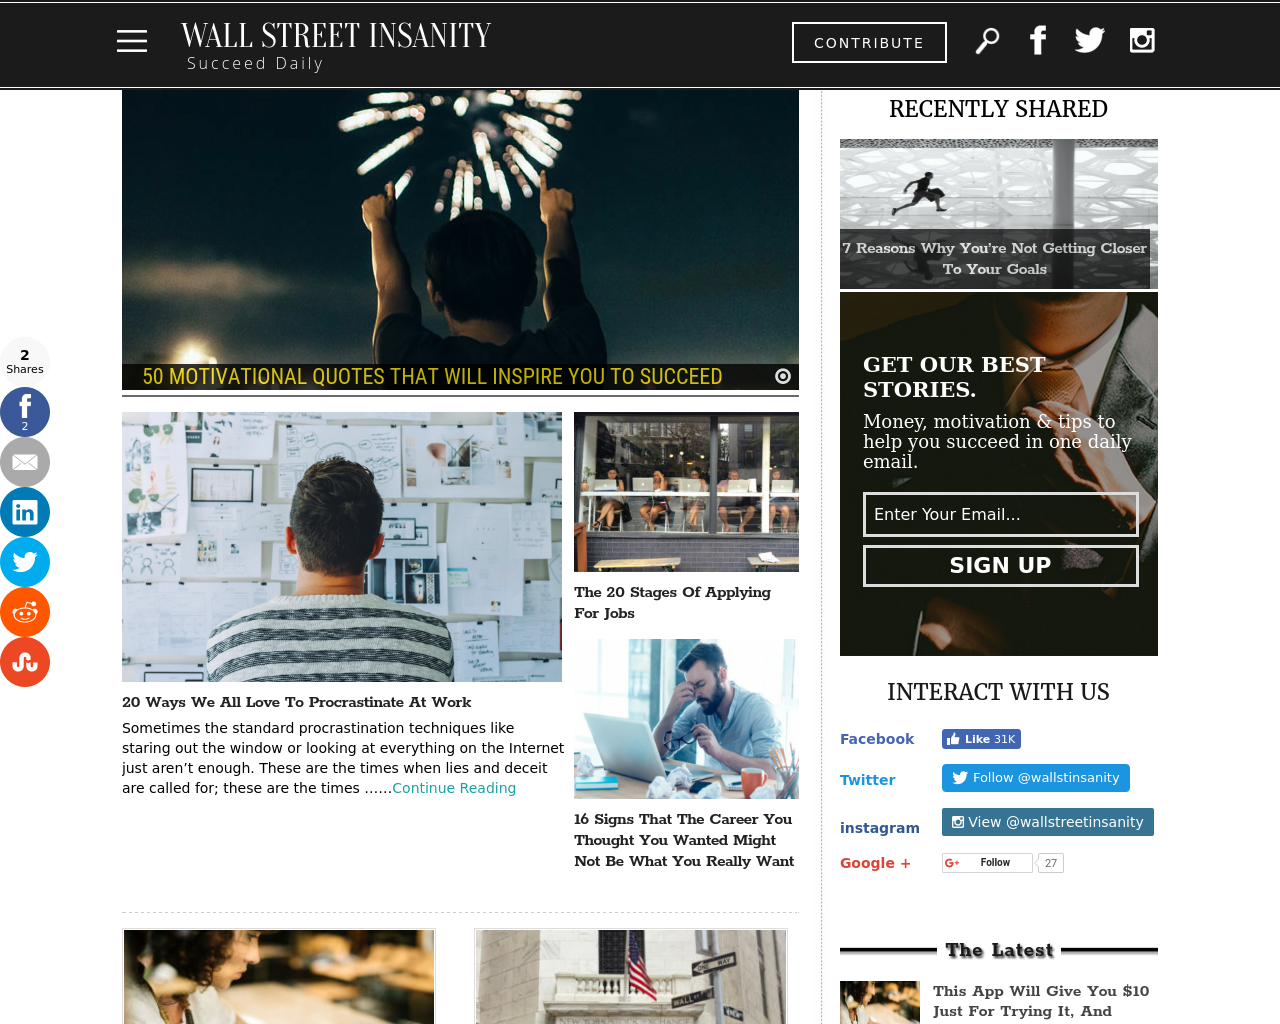 Wall-Street-Insanity-Advertising-Reviews-Pricing